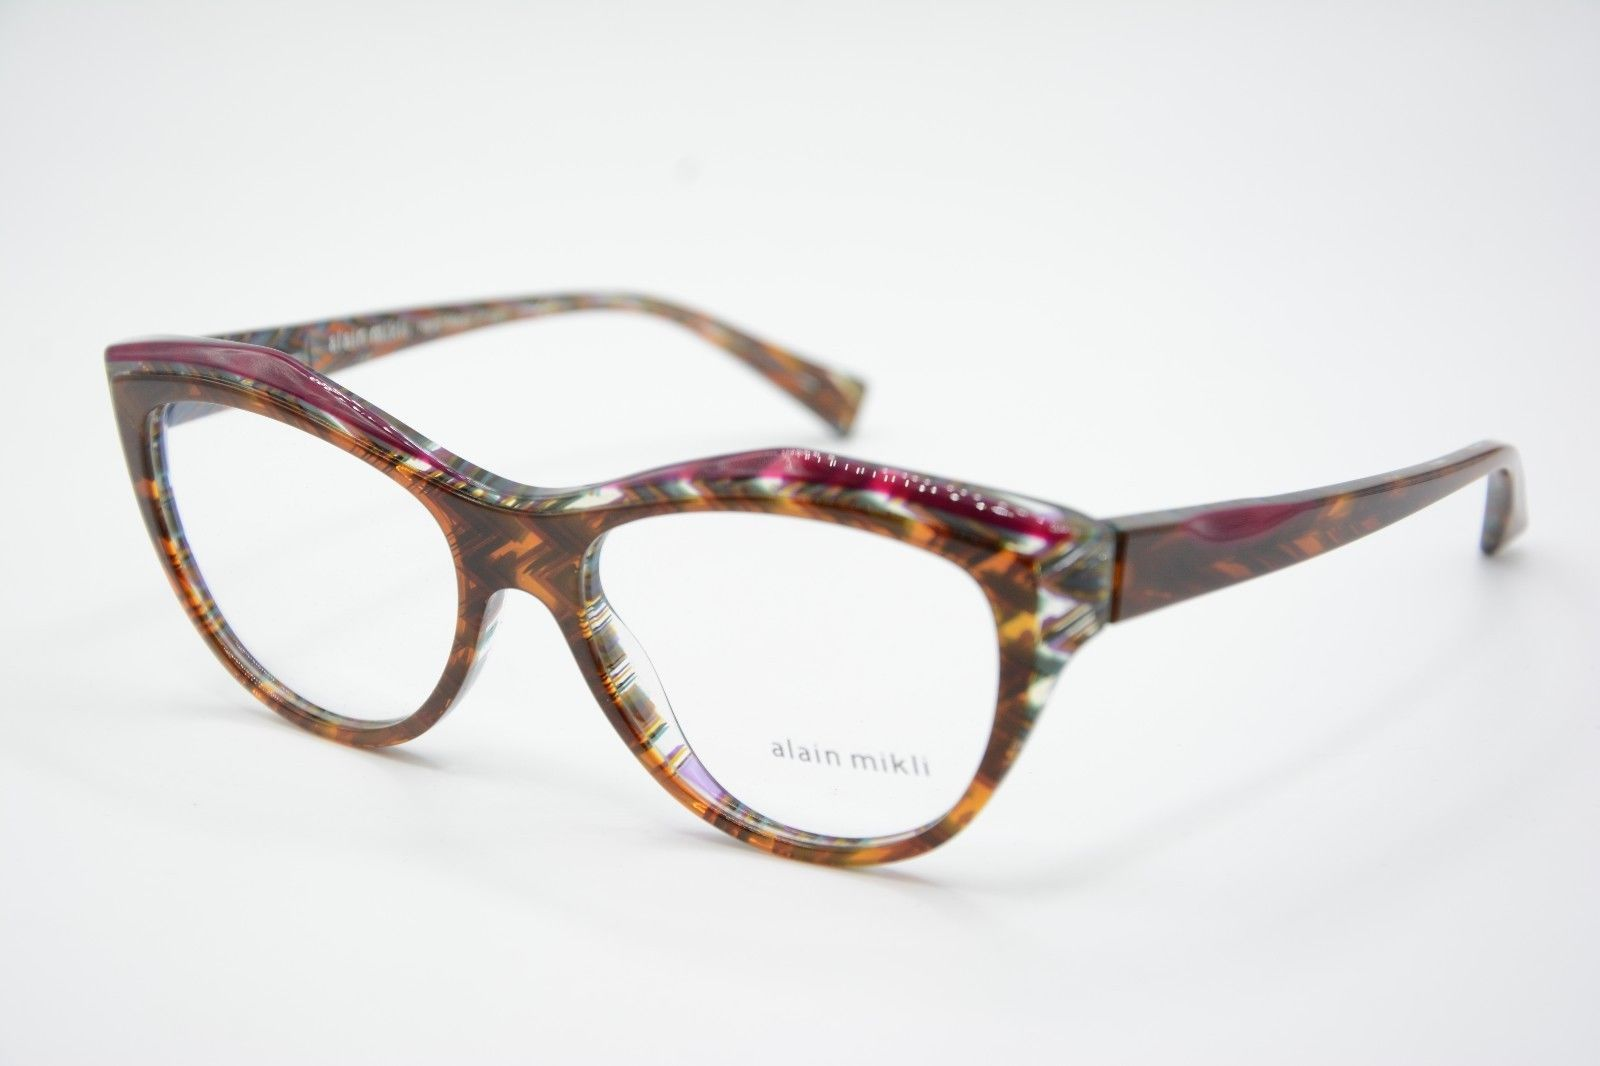 c14a122fc0 New Alain Mikli A 03041 4115 Brown and 50 similar items